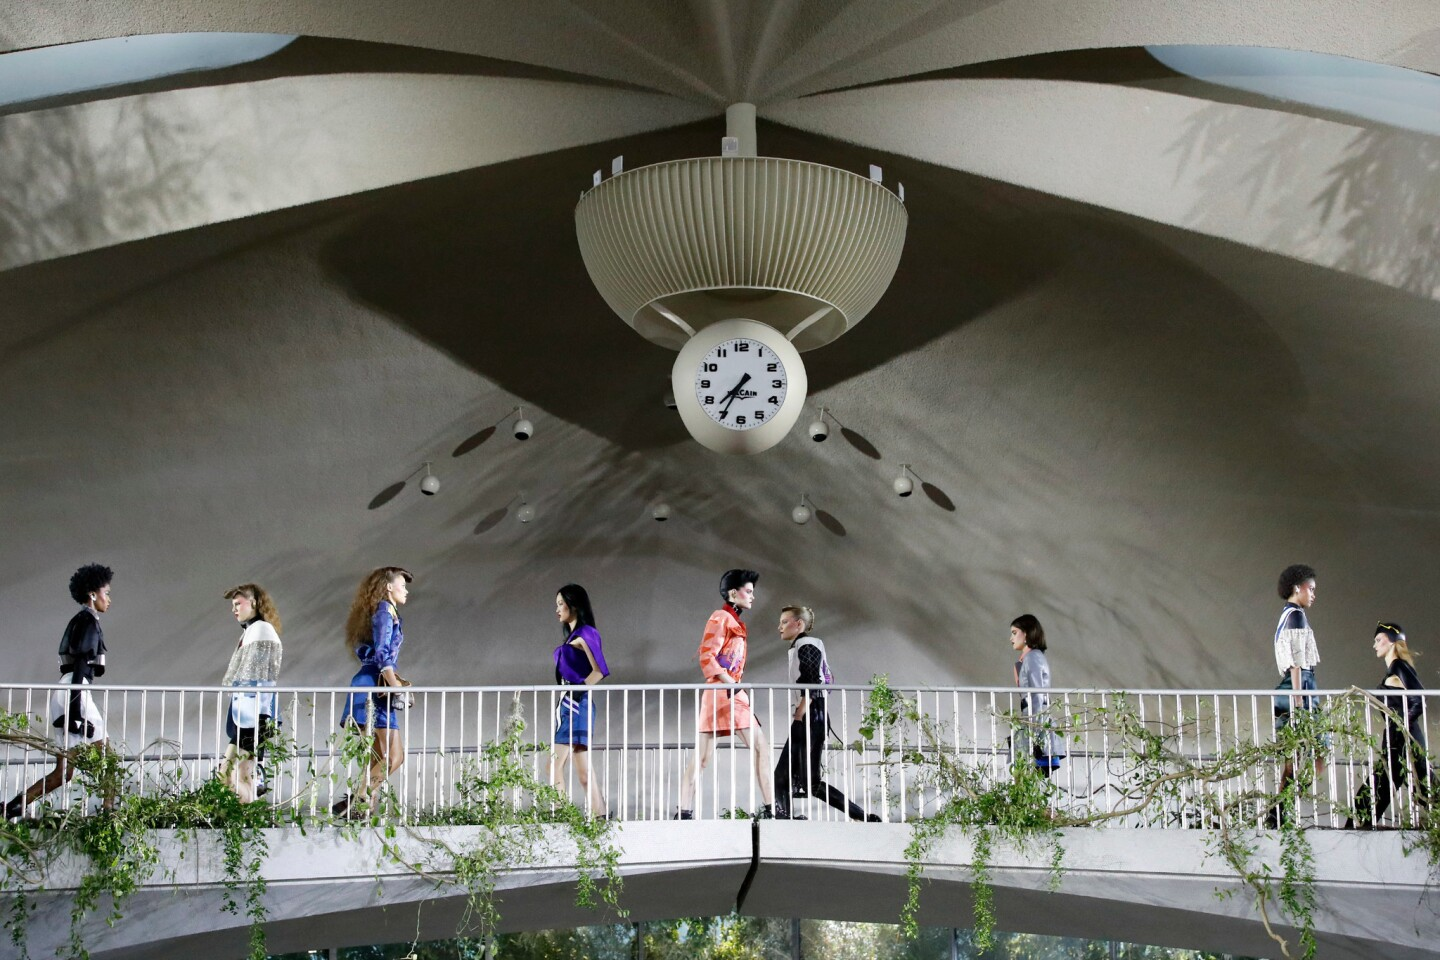 Models present looks by French designer Nicolas Ghesquière for Louis Vuitton during the brand's 2020 cruise show at the TWA Flight Center at John F. Kennedy International Airport in New York.